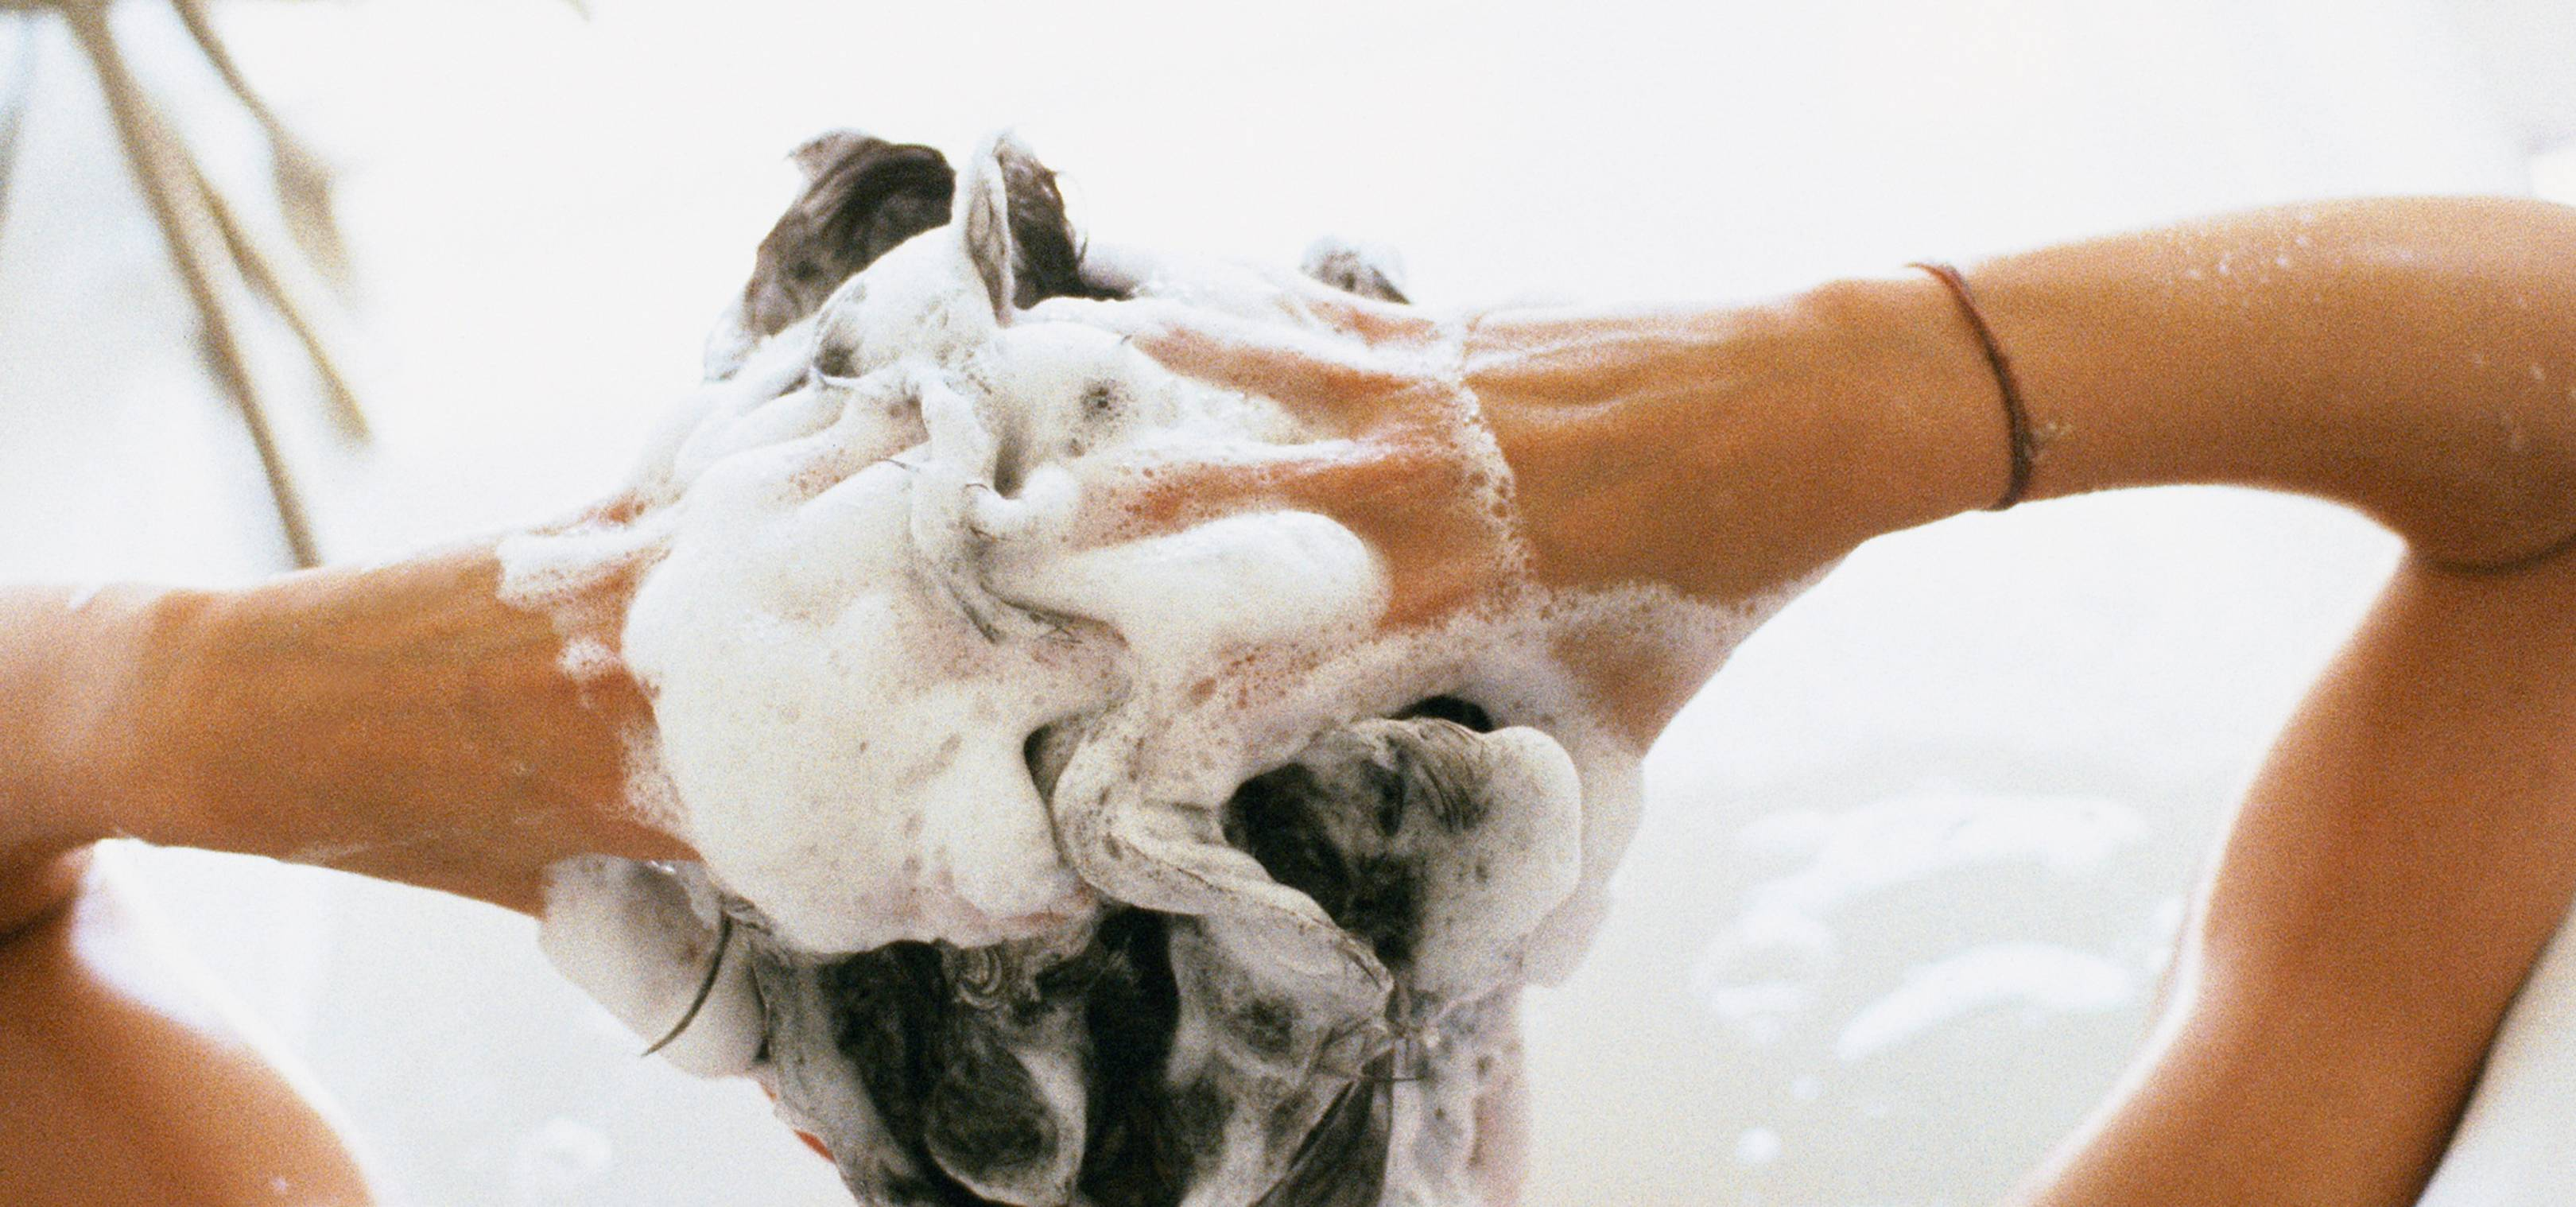 So, it turns out there's an optimal way to wash your hair at home for salon-worthy bounce